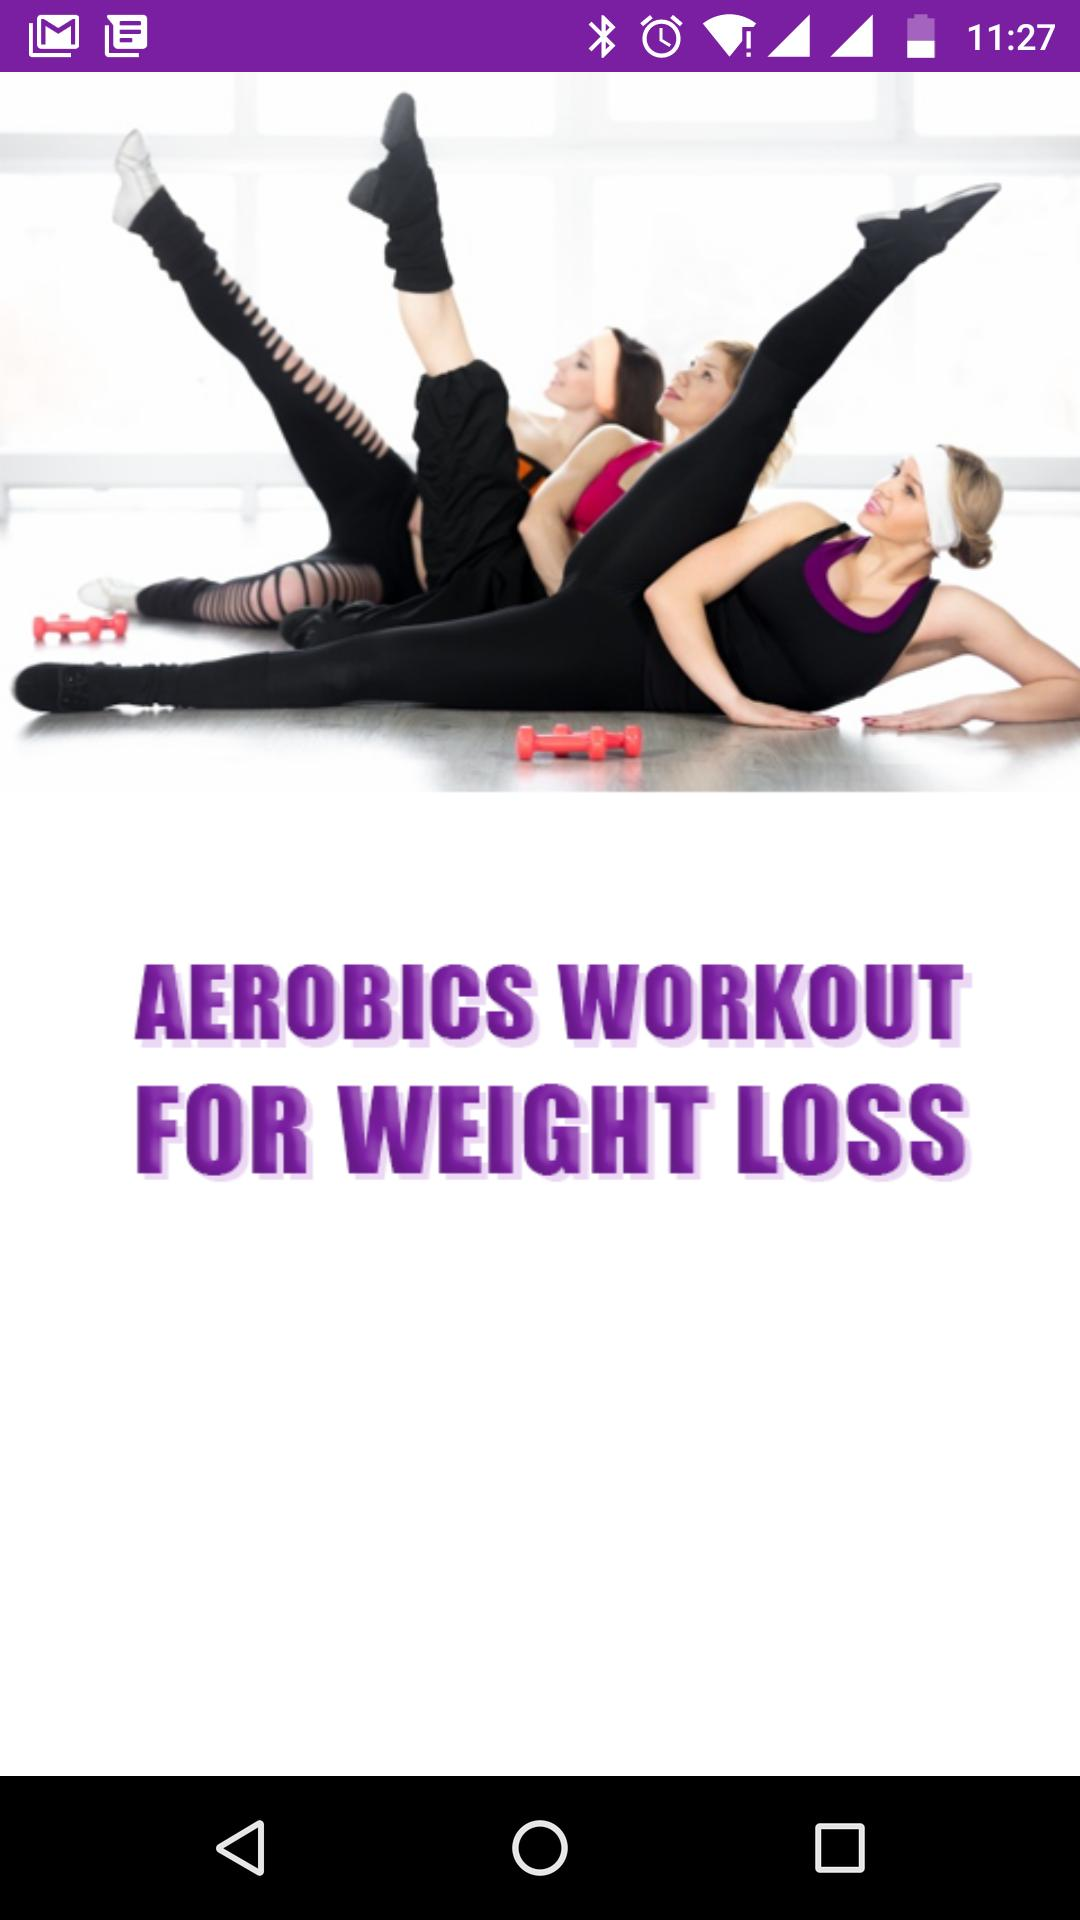 Aerobics Exercise For Weight Loss Workout Videos For Android Apk Download